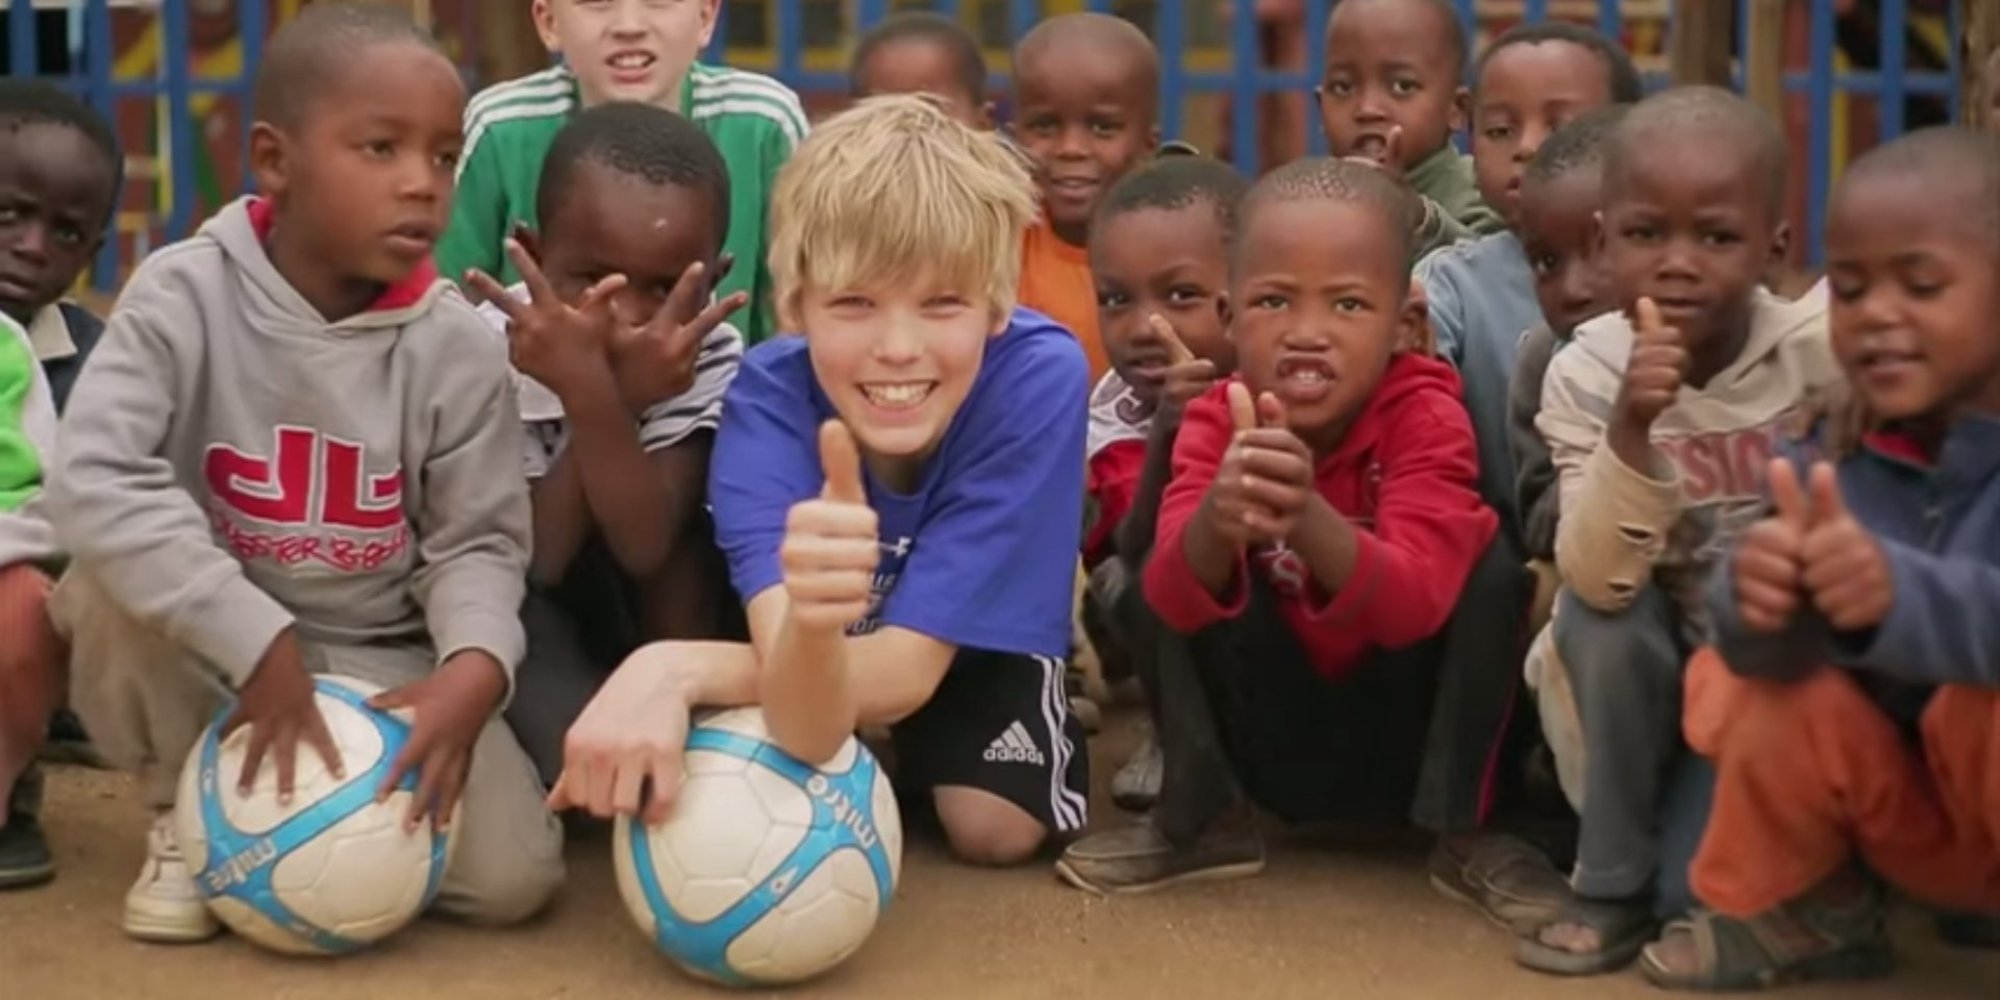 This Boy Has Given Away More Than 4 000 Soccer Balls To